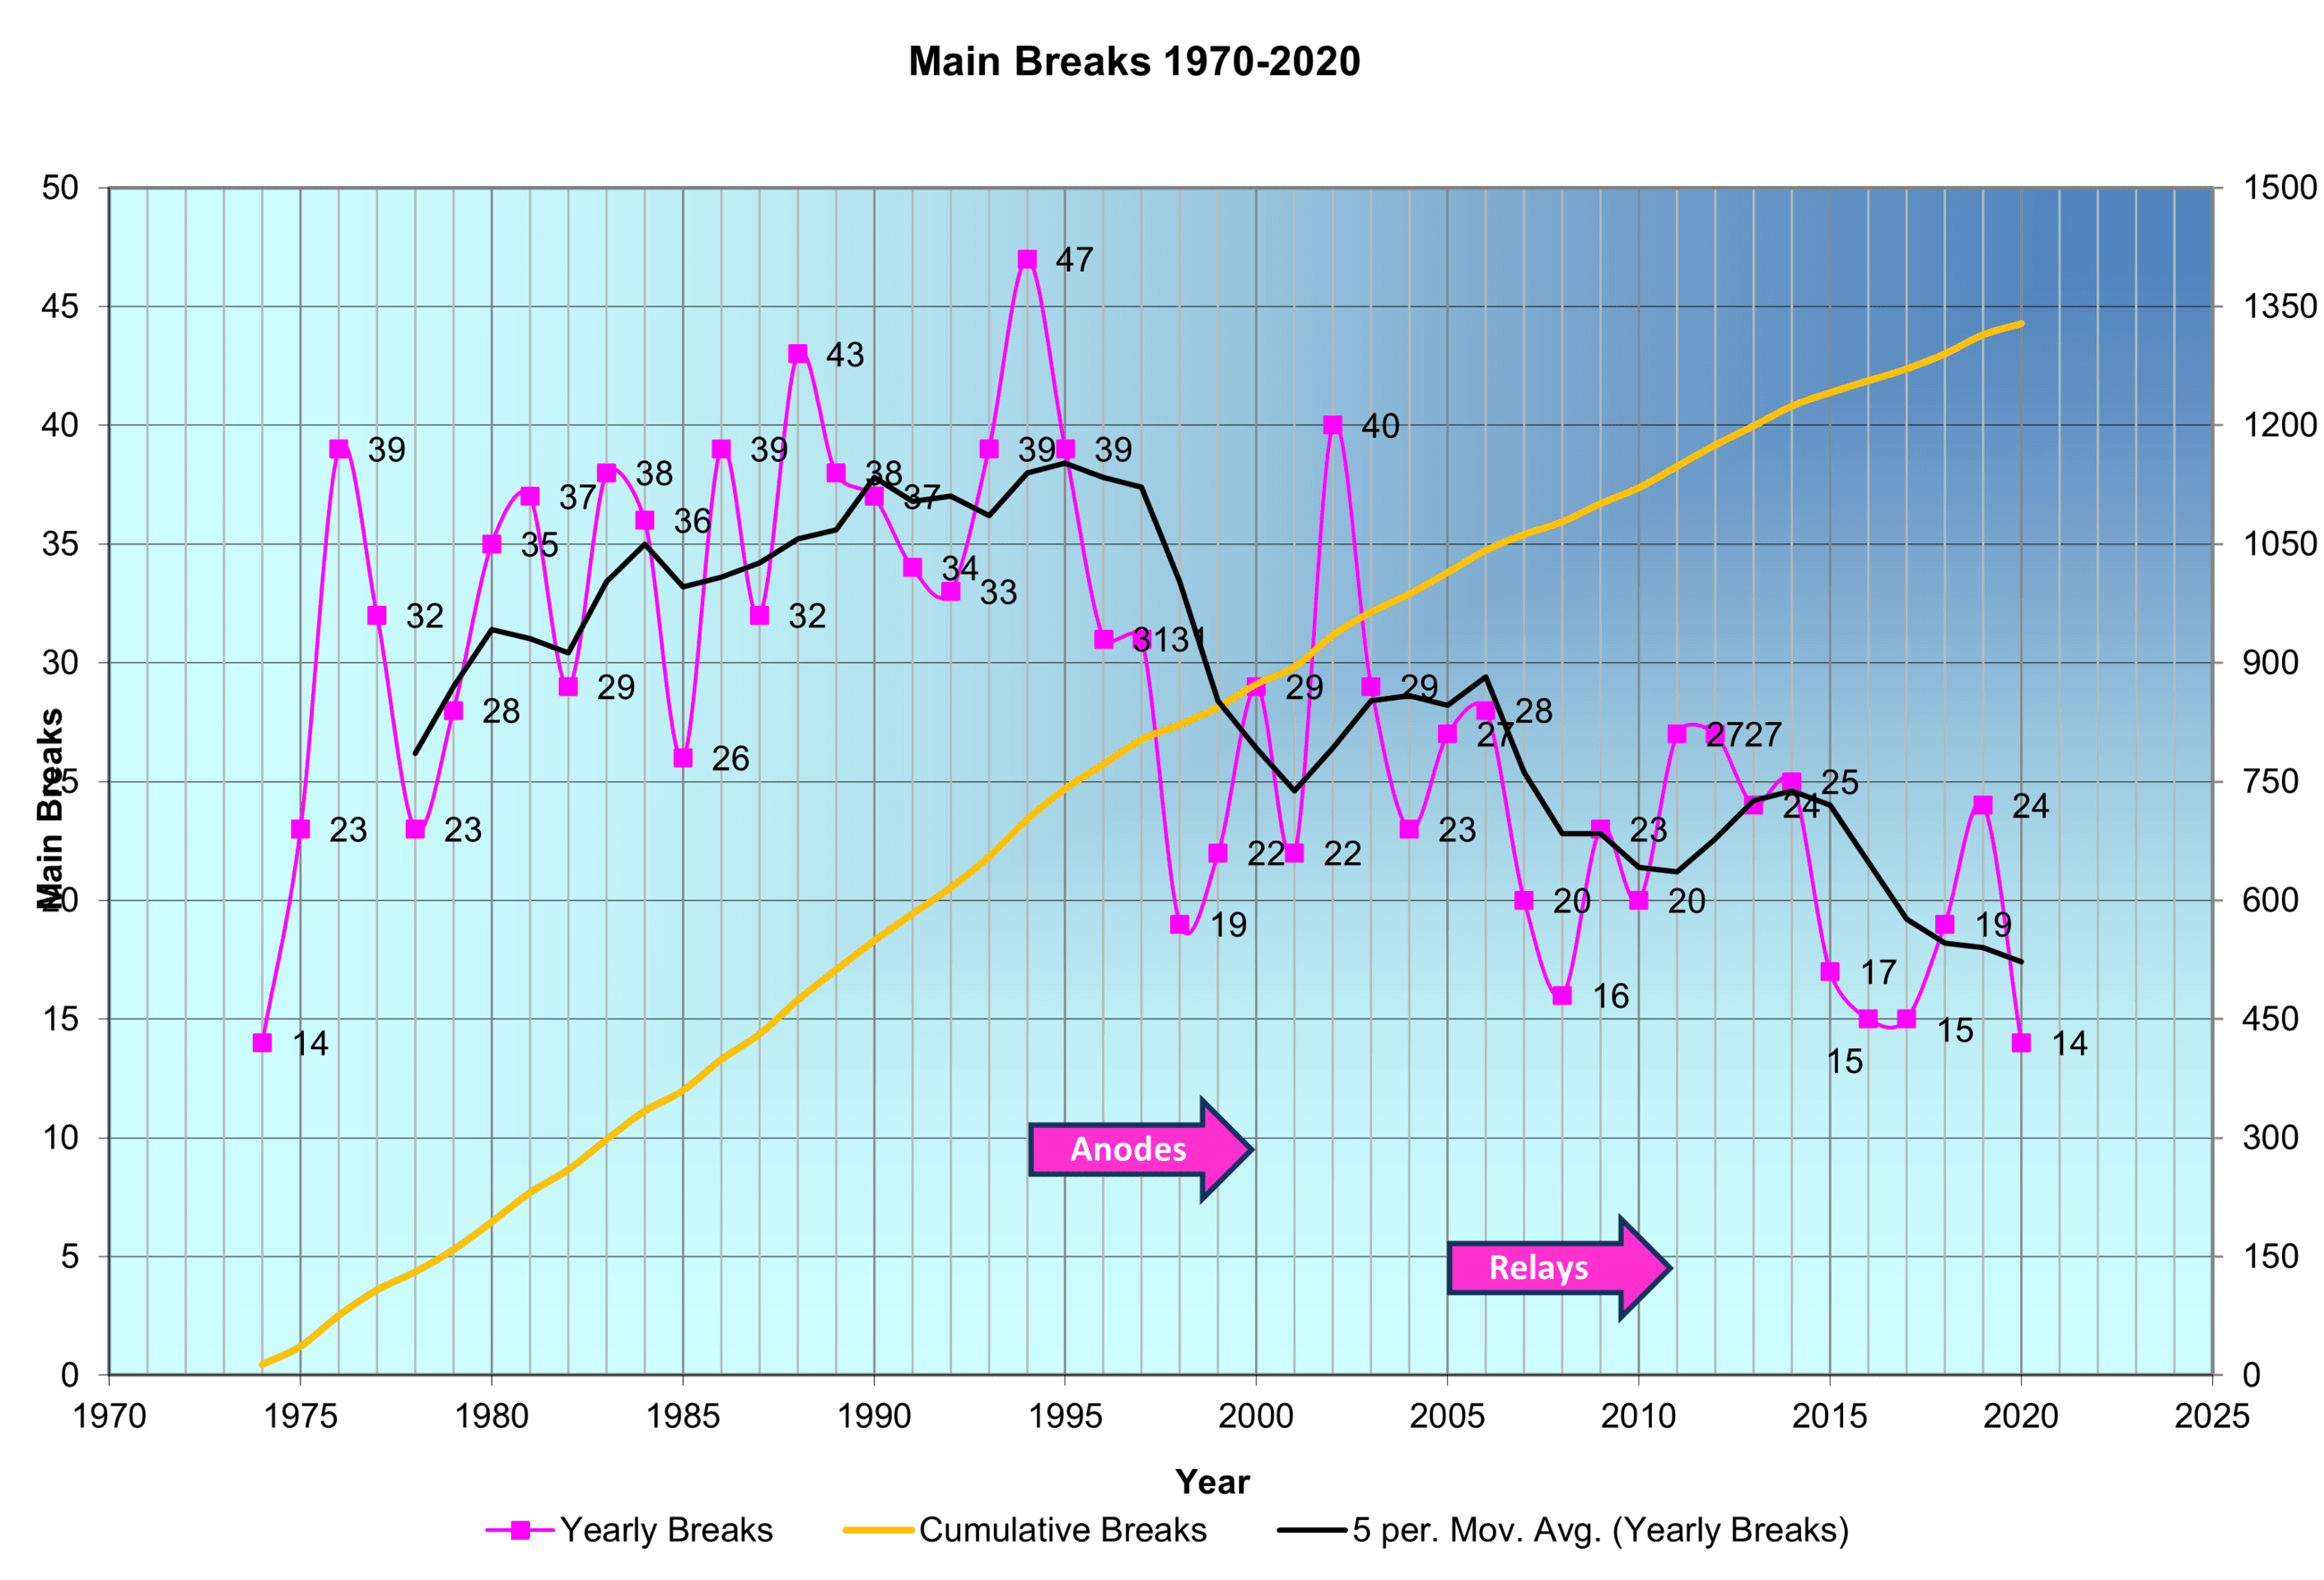 Main Breaks from 1970 to 2020